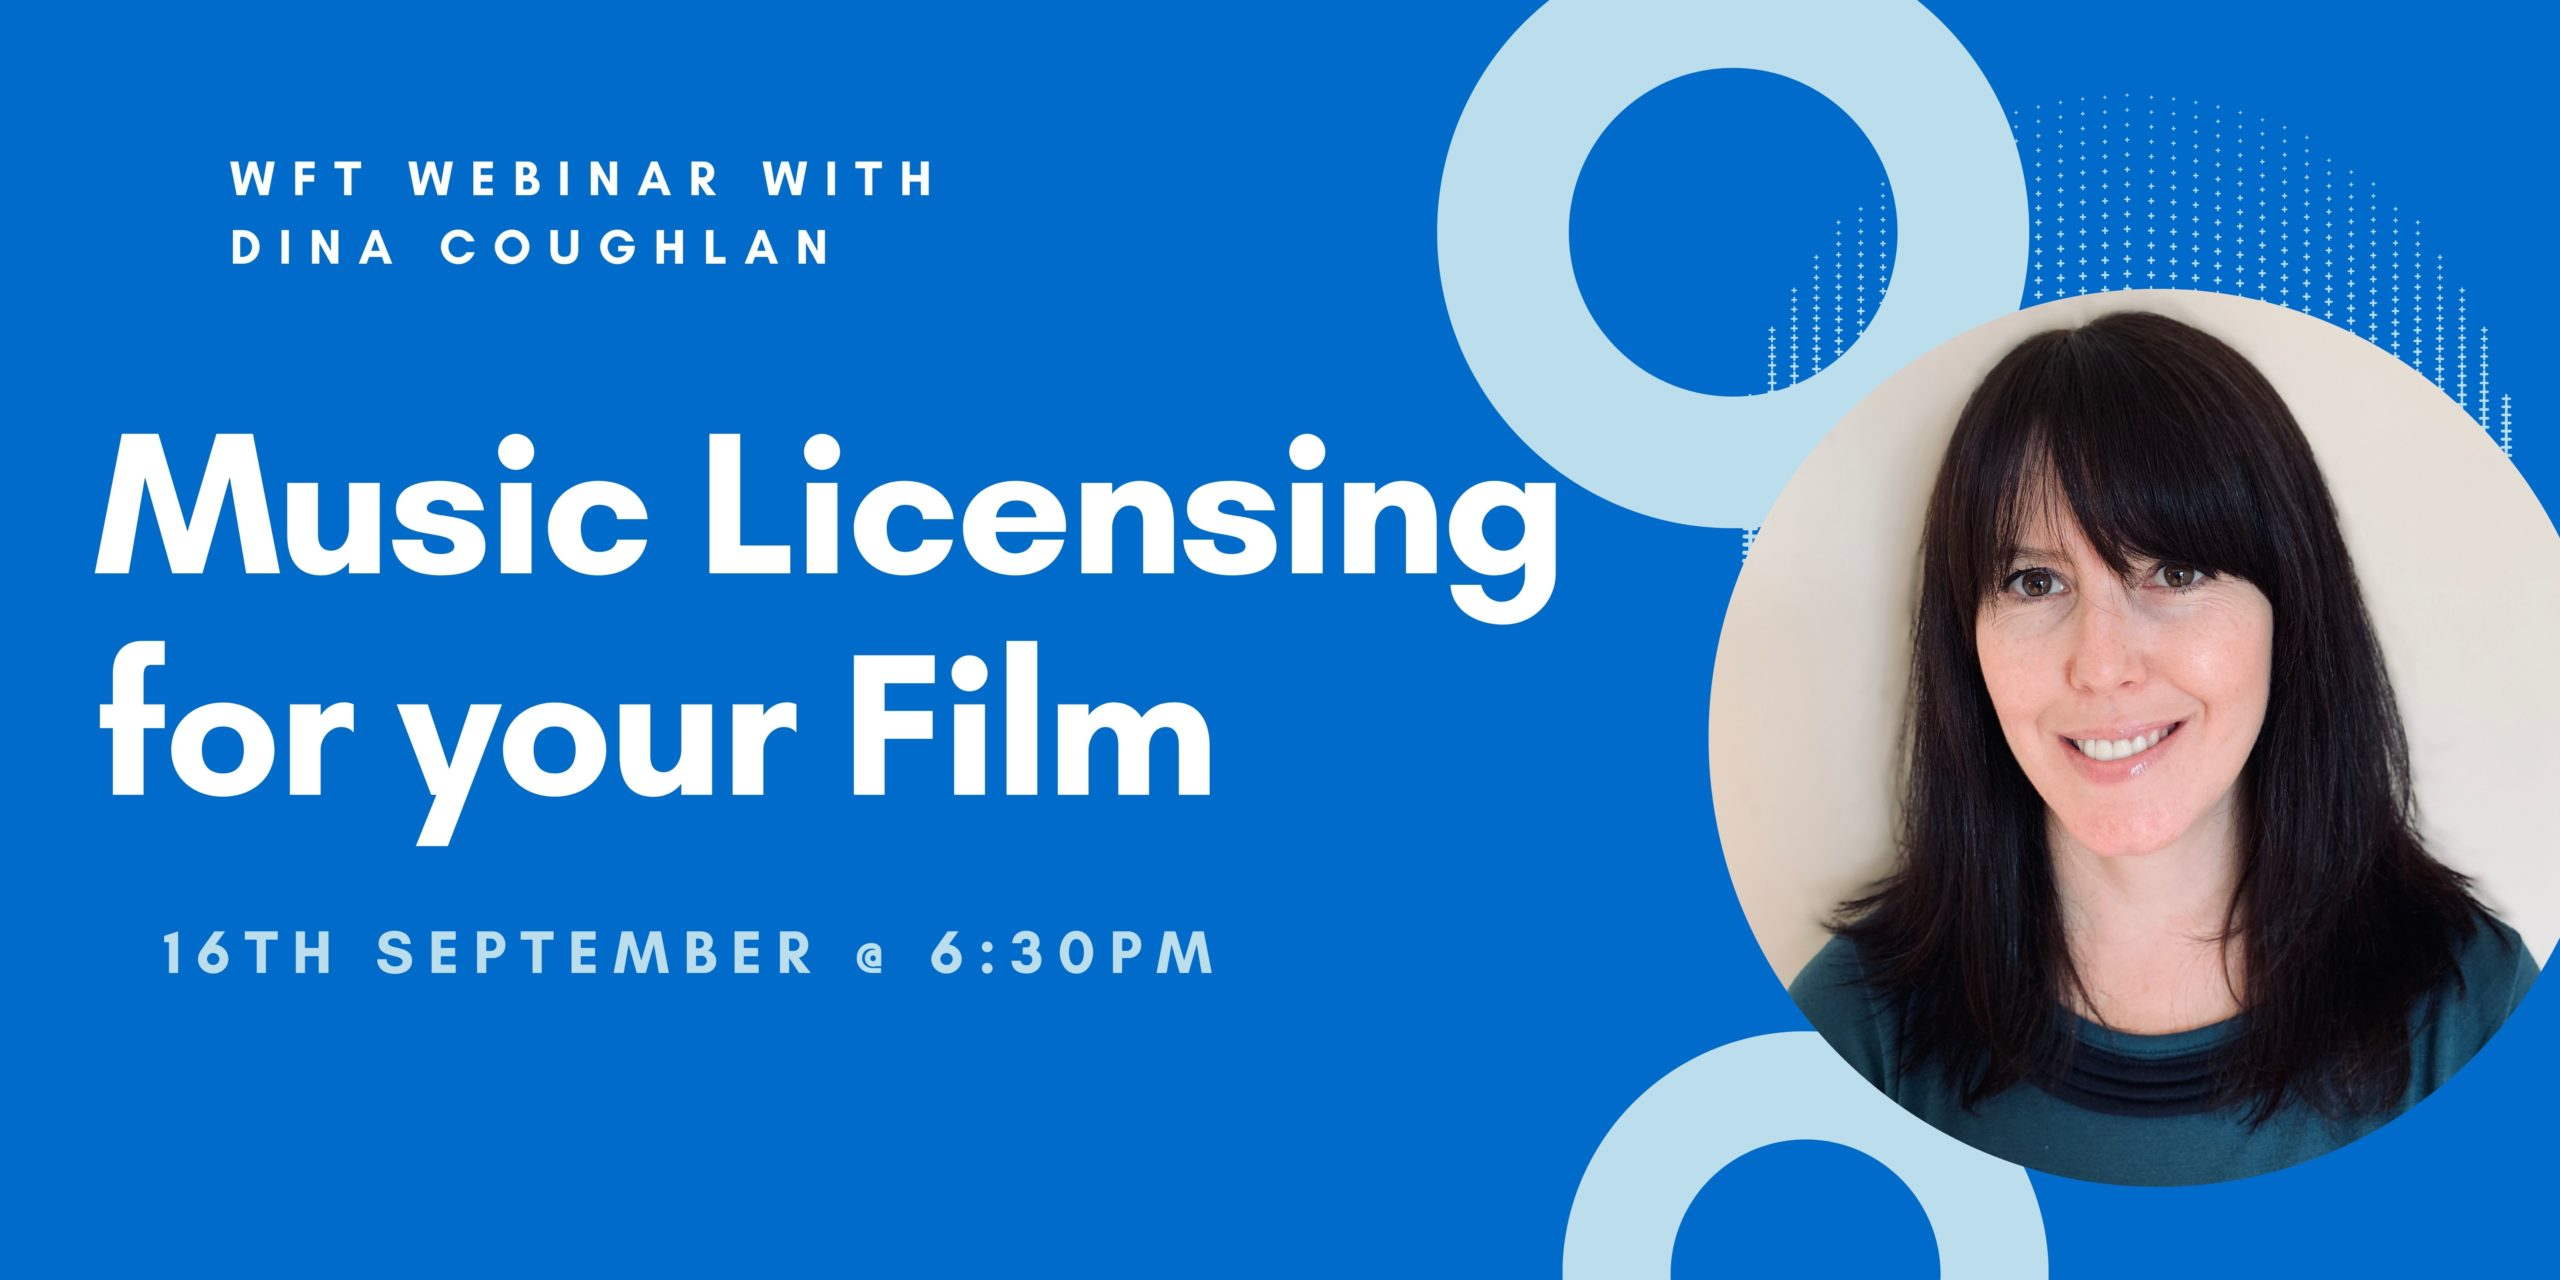 Music Licensing for your Film with Dina Coughlan